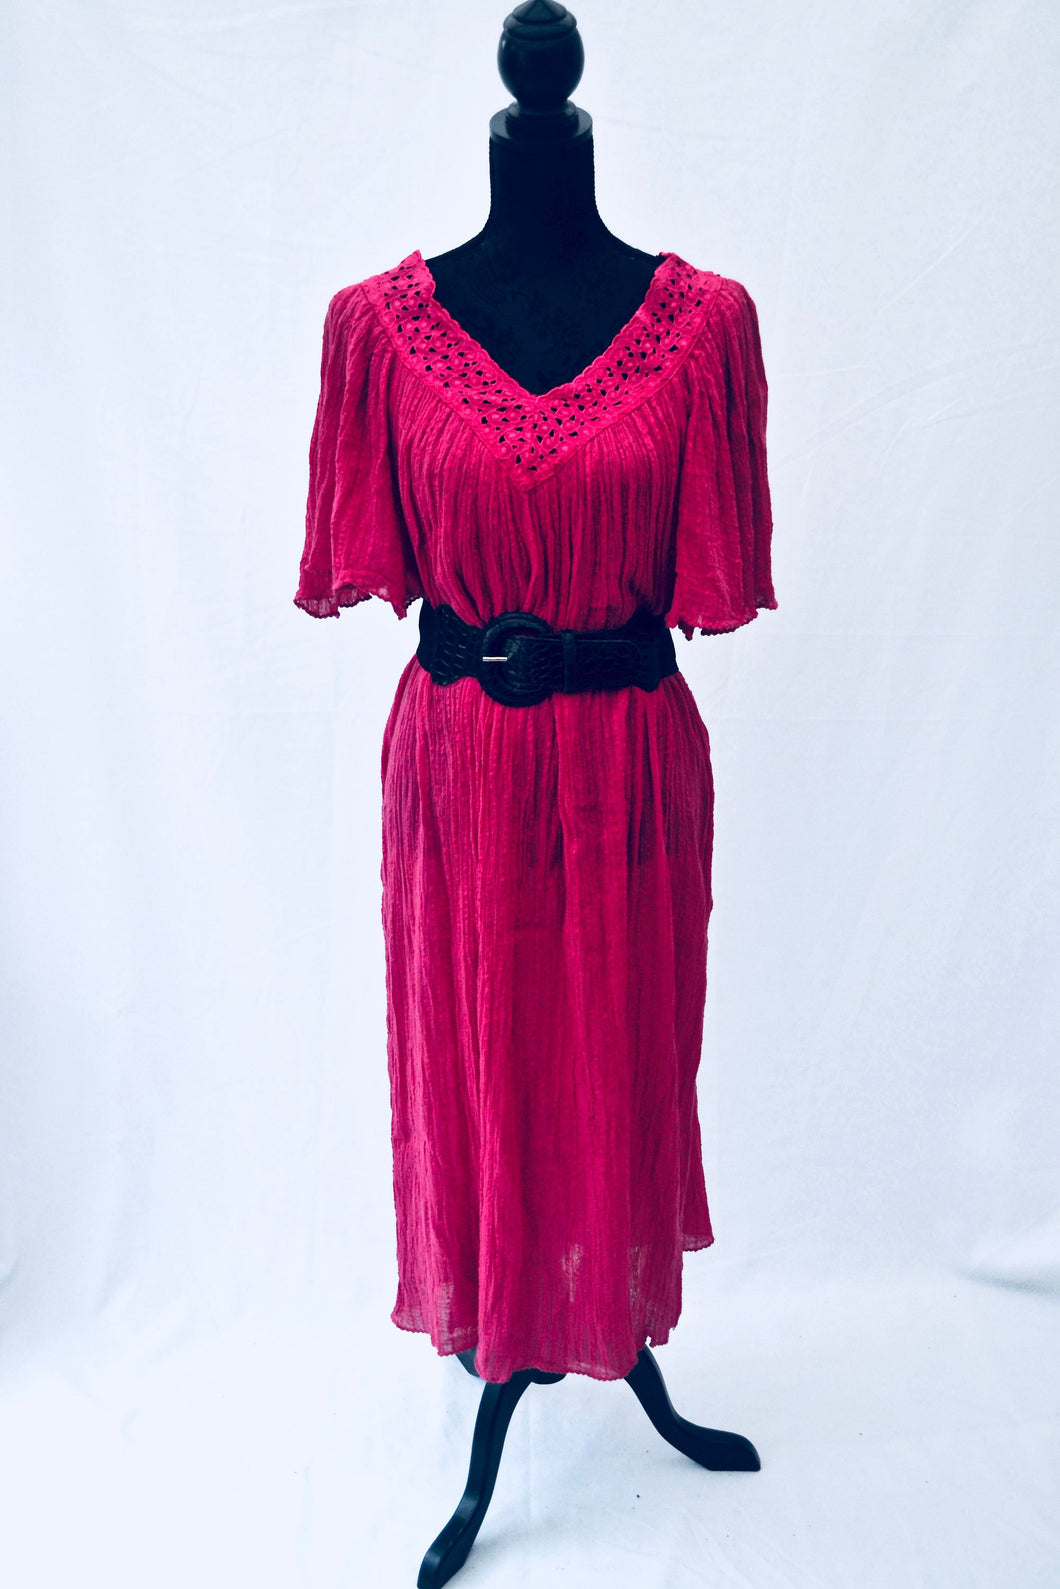 1970s Pink Kaftan dress | Short sleeved dress | Oversized dress | Est UK size 10/12/14/16/18